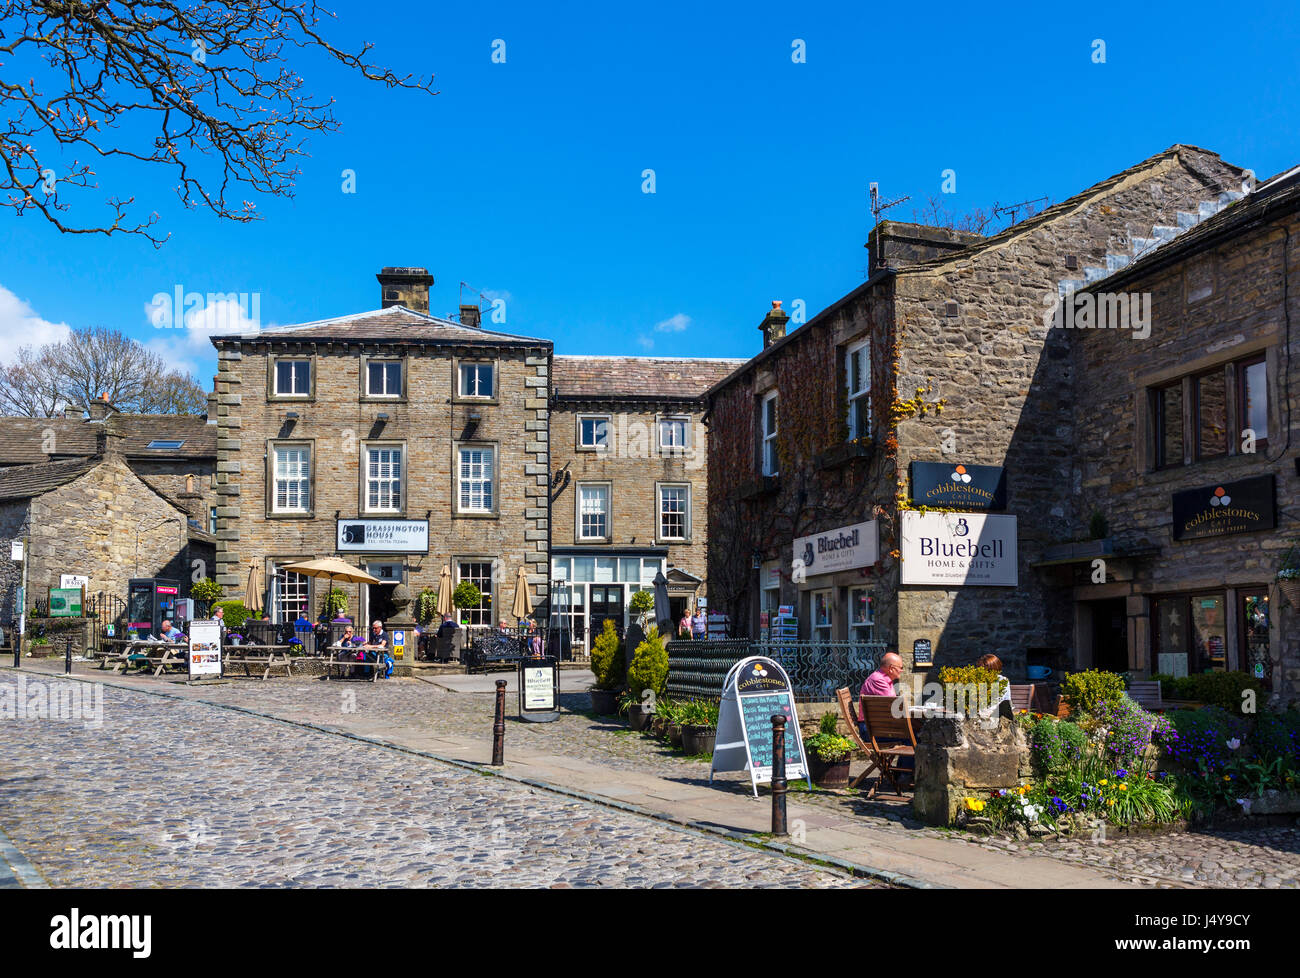 Cafe on The Square in the  traditional English village of Grassington, Wharfedale, Yorkshire Dales National Park, North Yorkshire, England, UK. Stock Photo